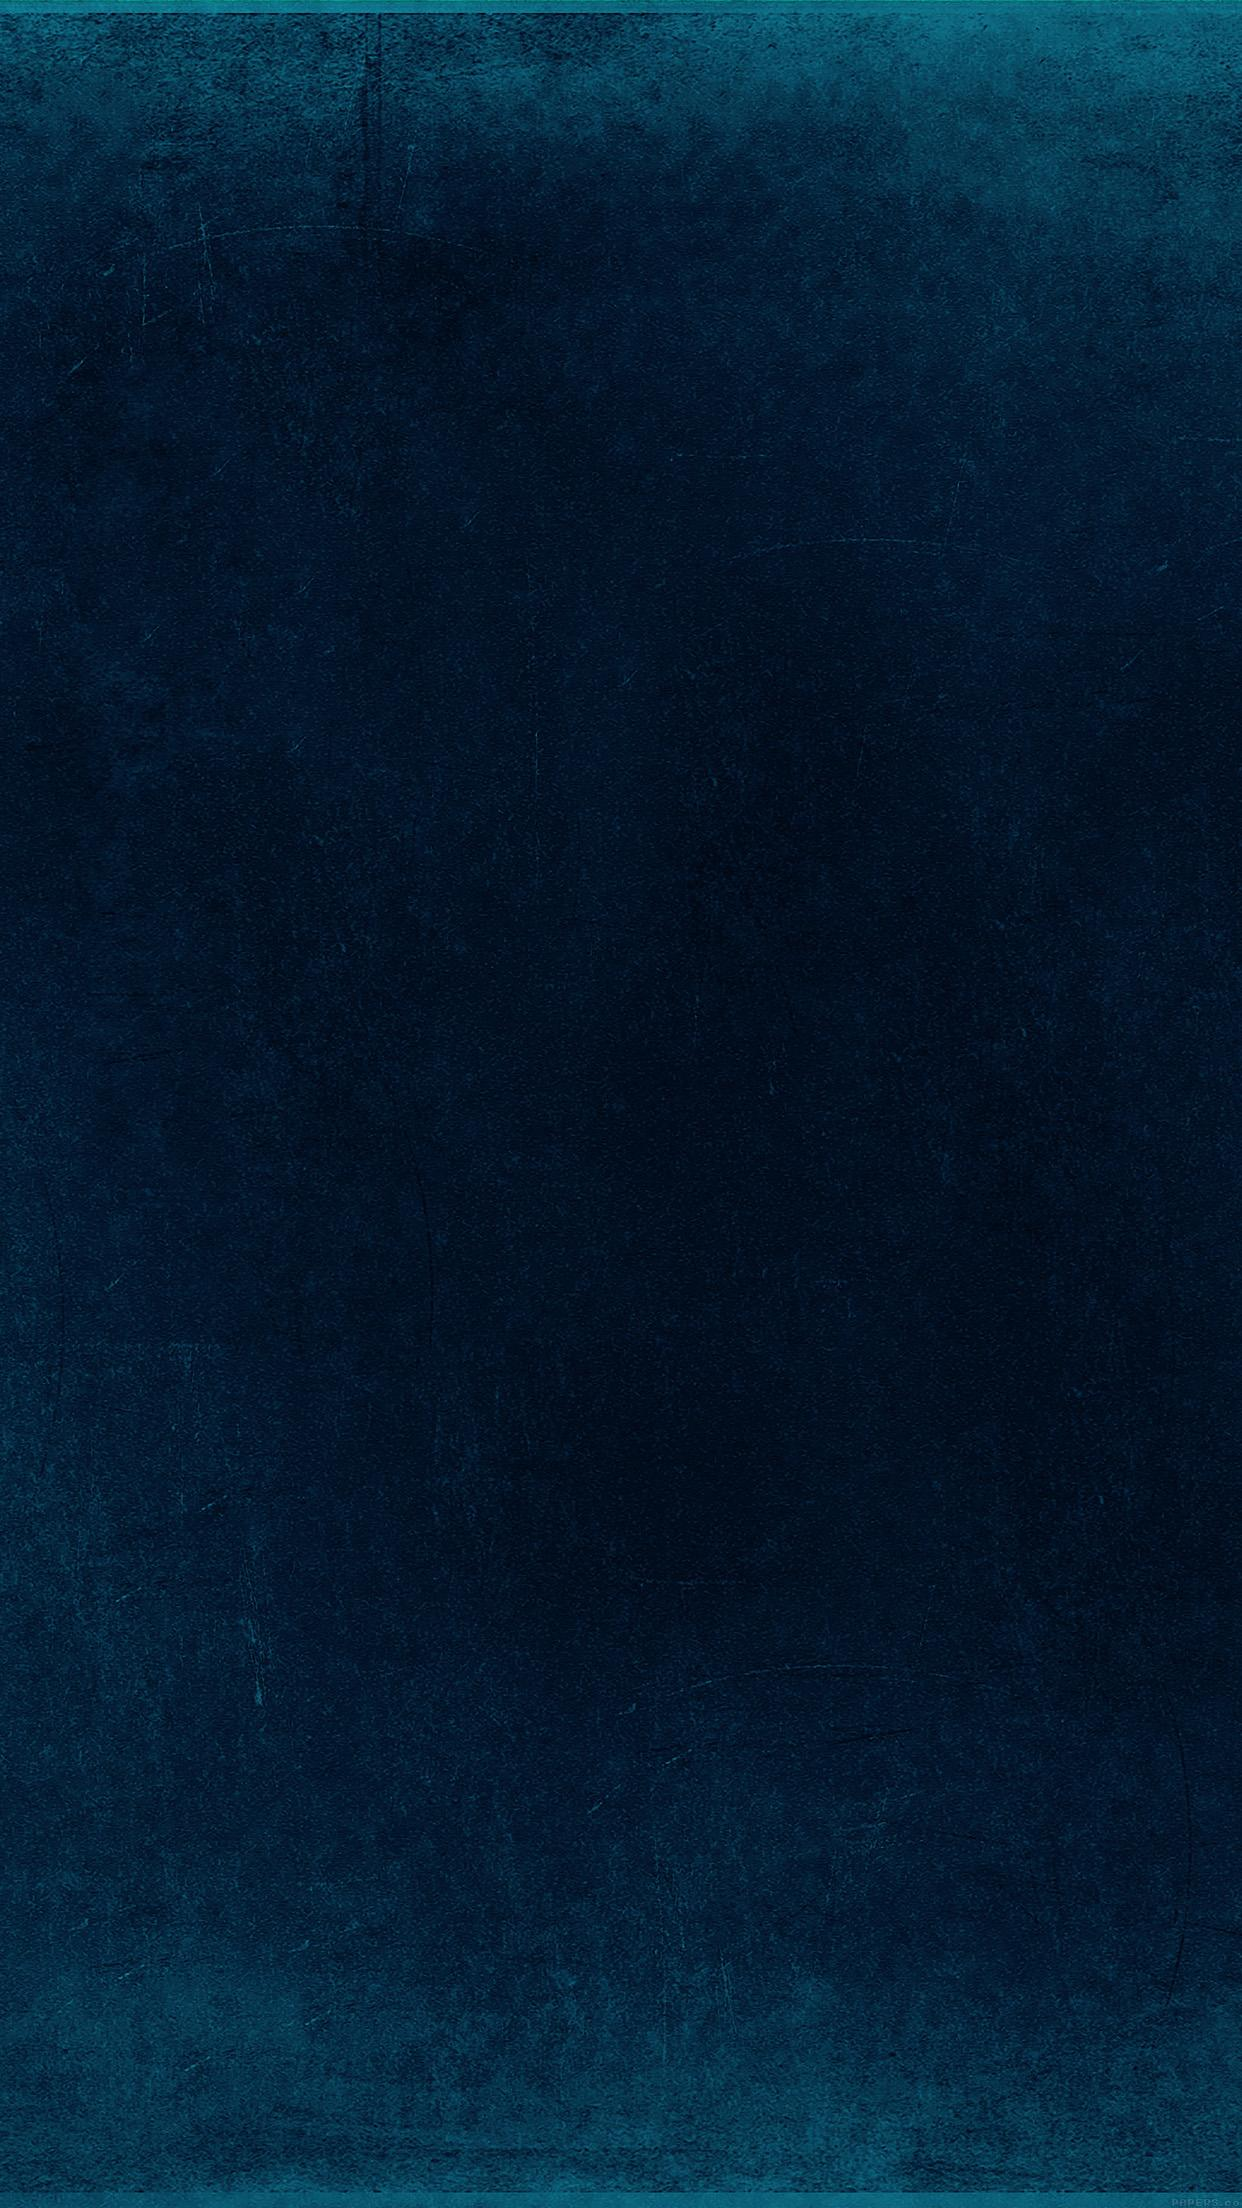 Free Download Widescreen Blue Texture Awesome Art Iphone 6s Plus